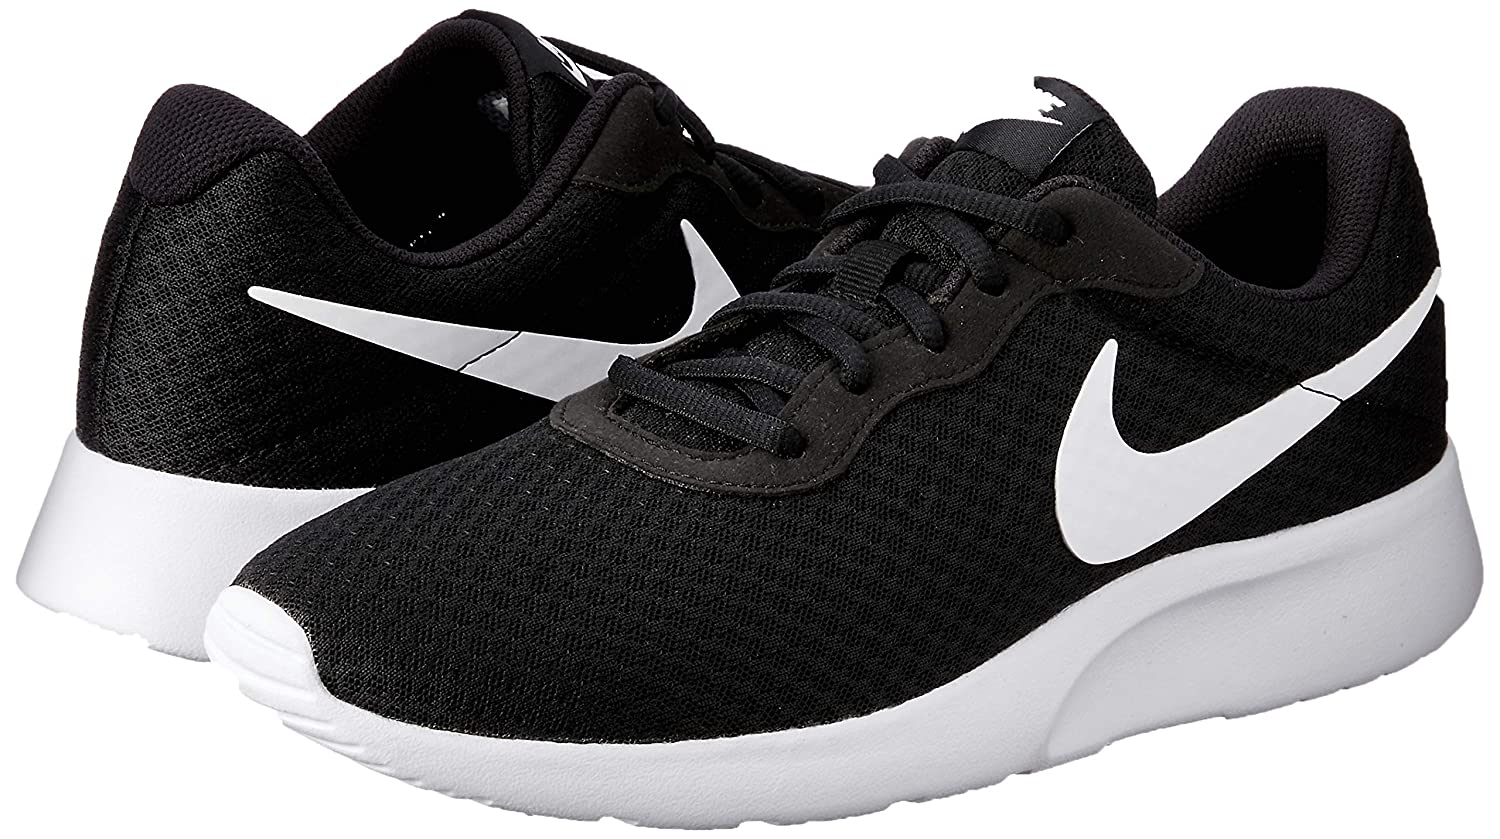 half off 95ca0 04e0e Amazon.com   NIKE Men s Tanjun Sneakers, Breathable Textile Uppers and  Comfortable Lightweight Cushioning   Road Running